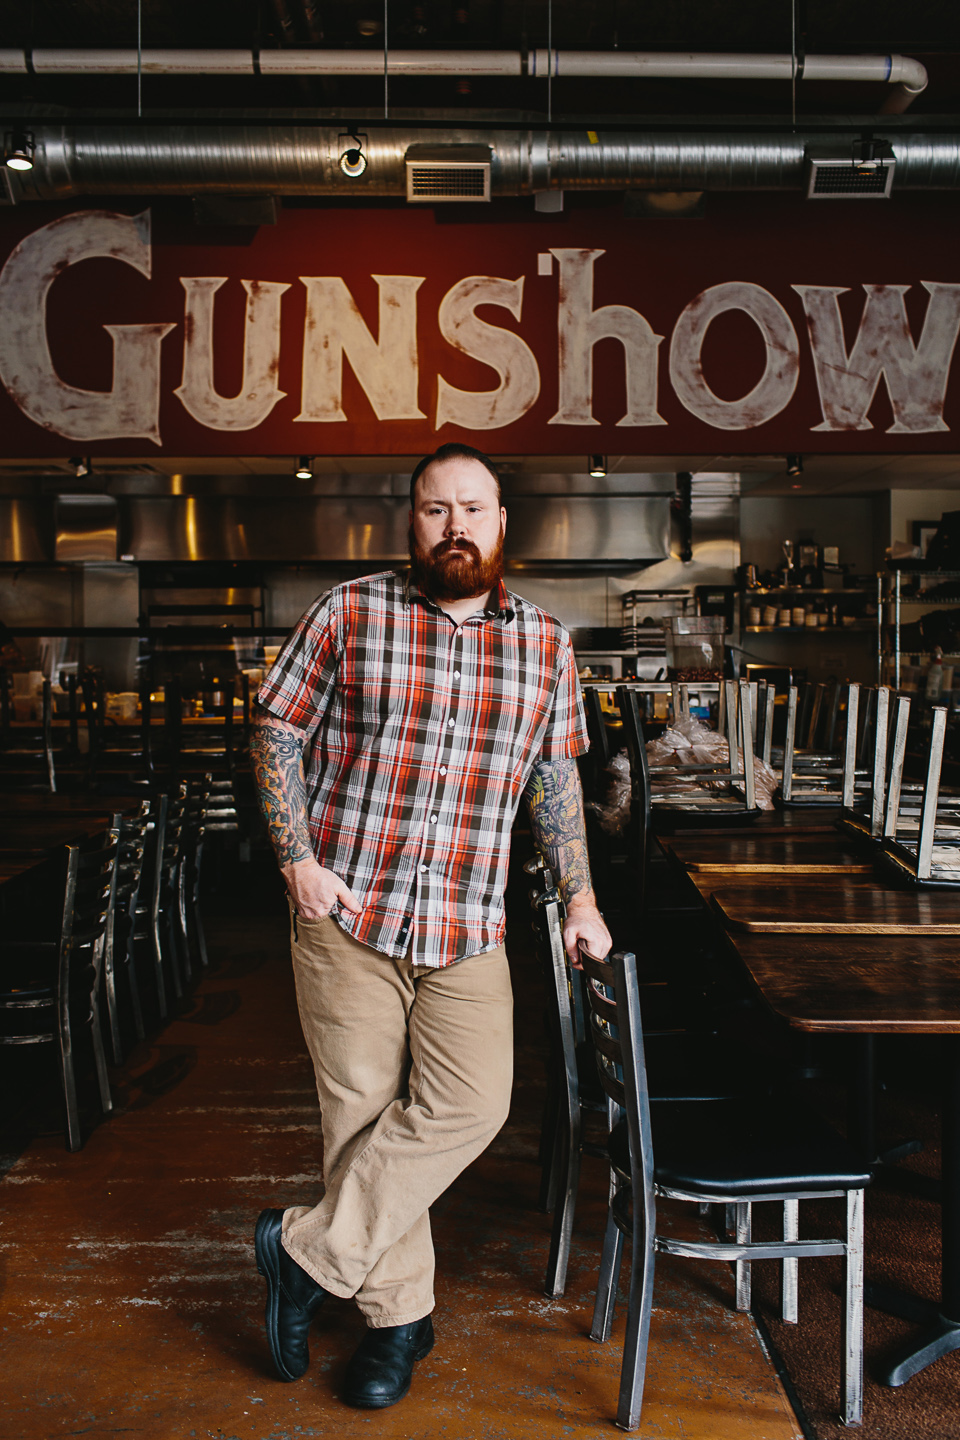 gunshow_portraits_color_0021.jpg